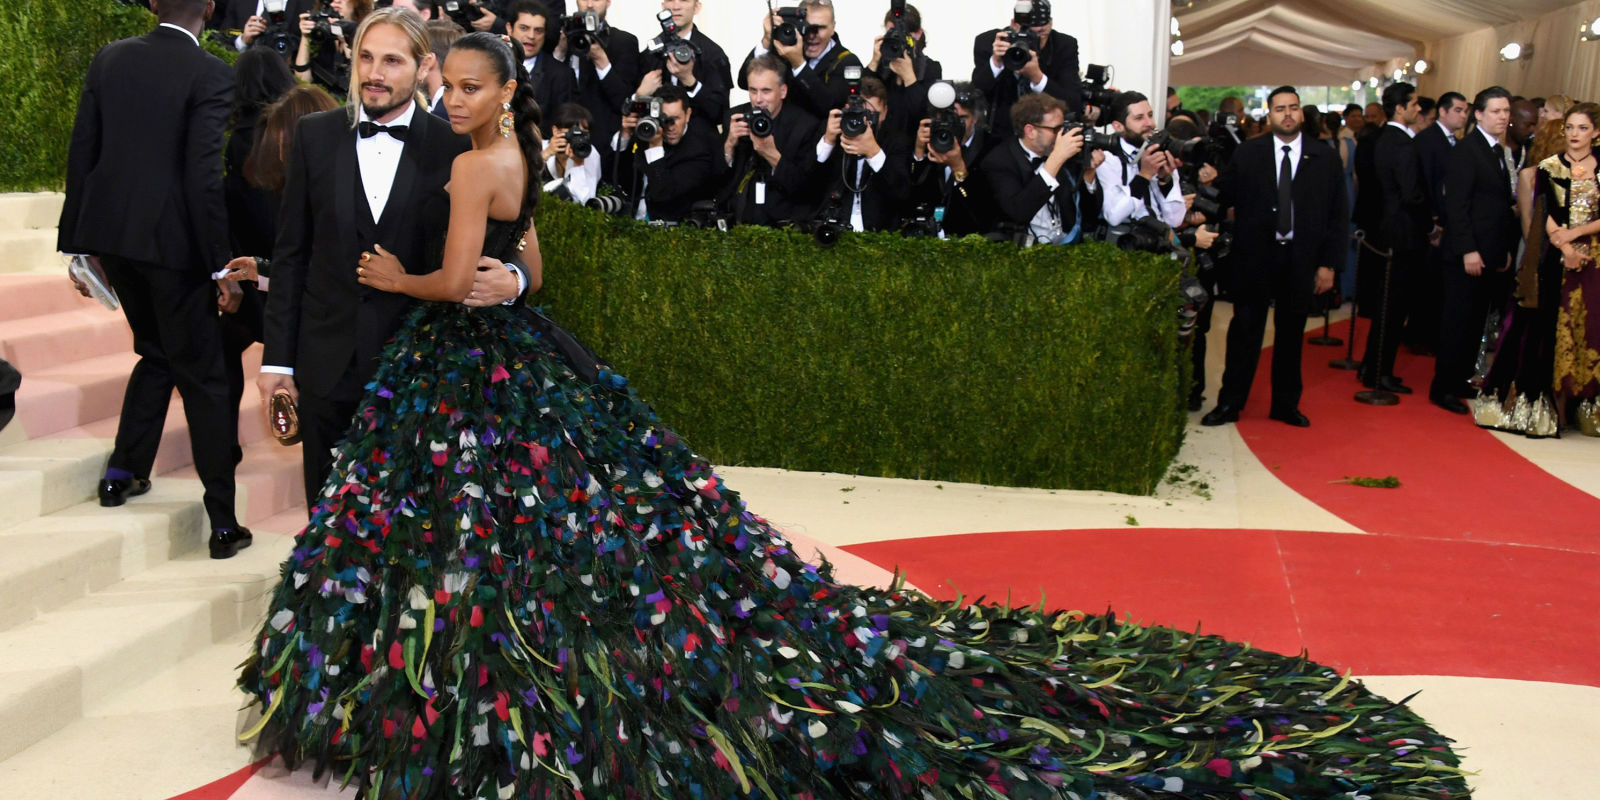 Top 5 looks from the Met Gala's 2016 Red Carpet